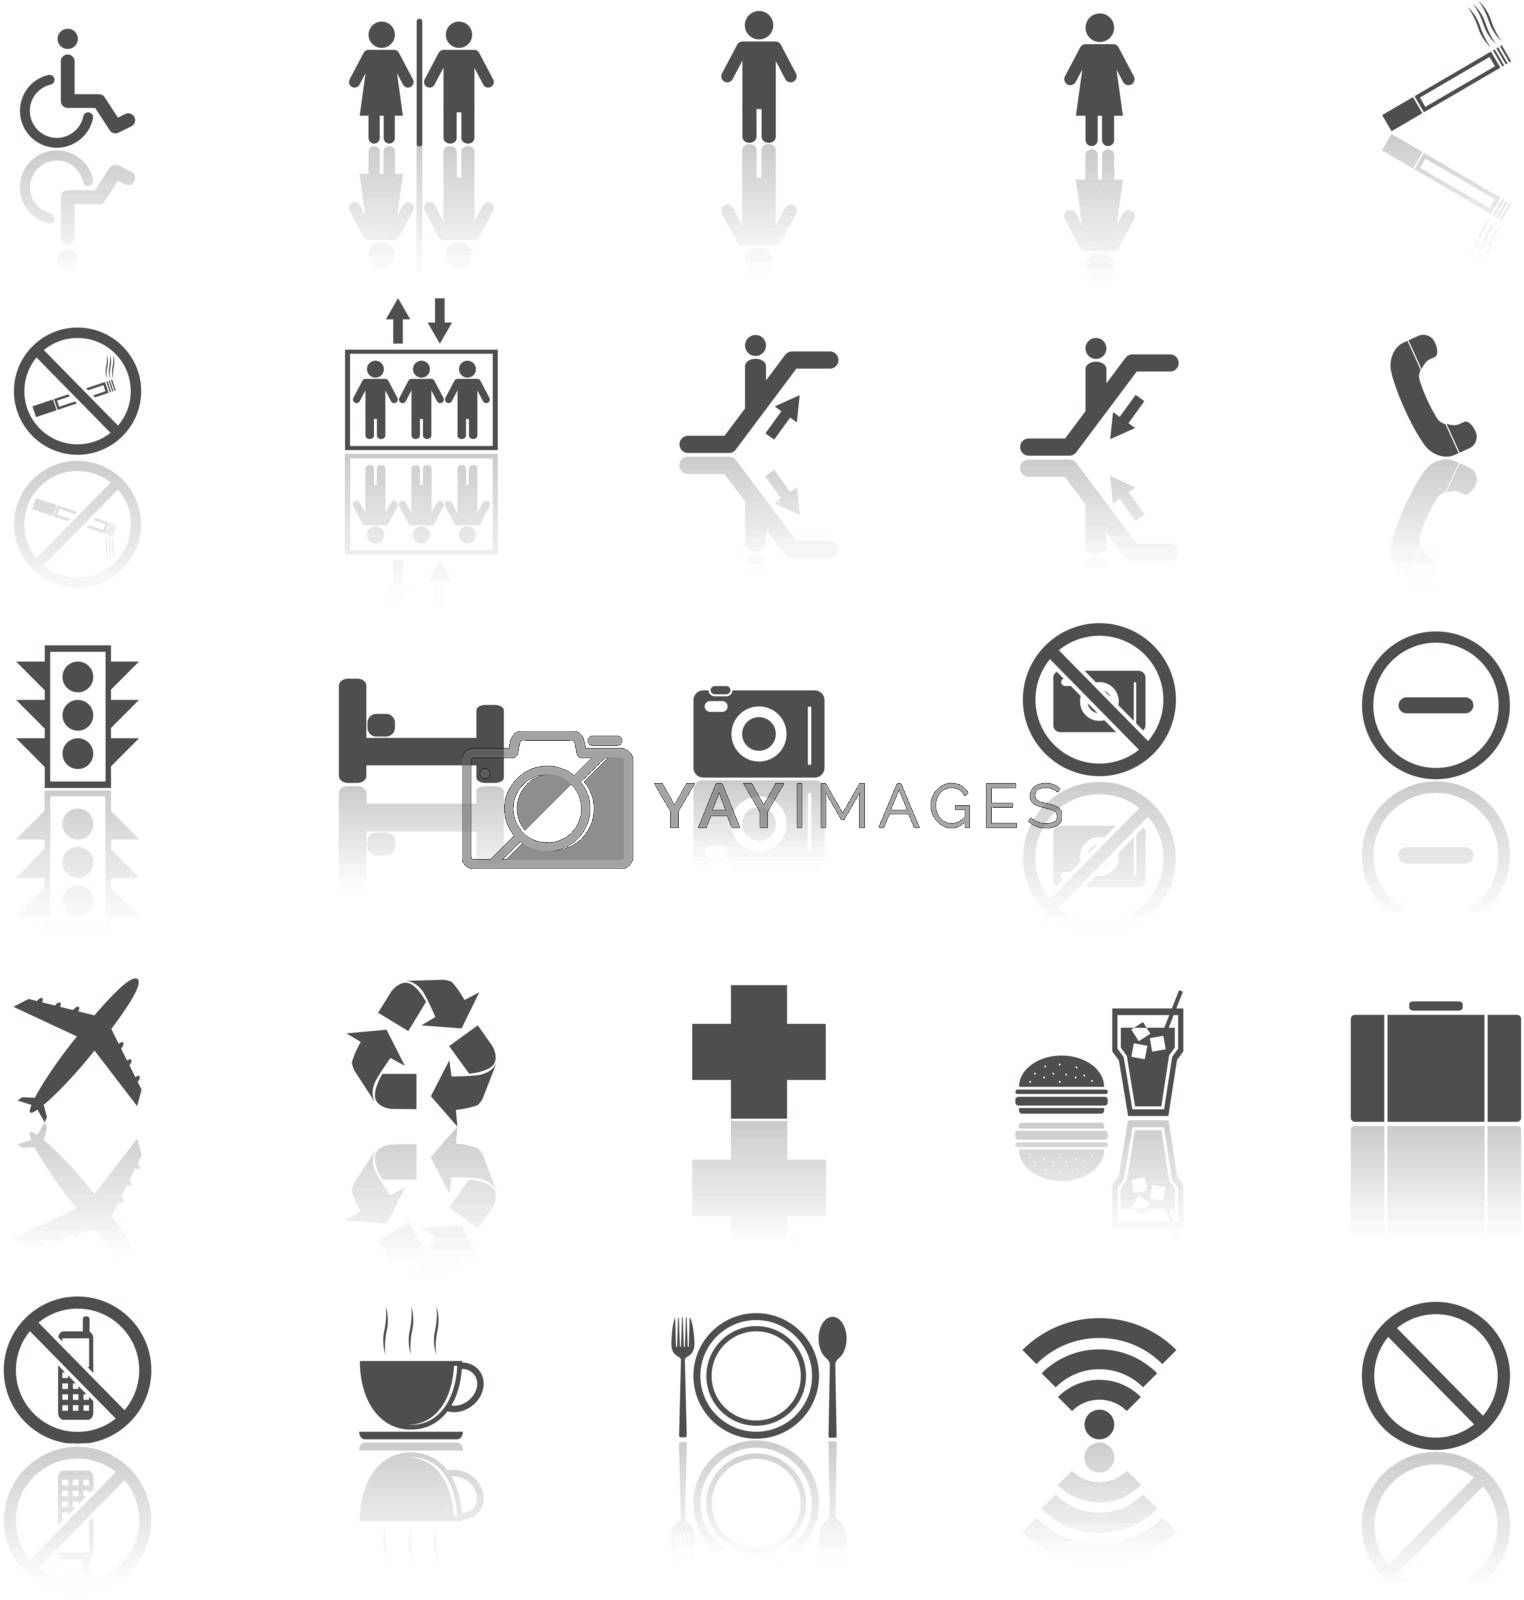 Plublic icons with reflect on white background, stock vector